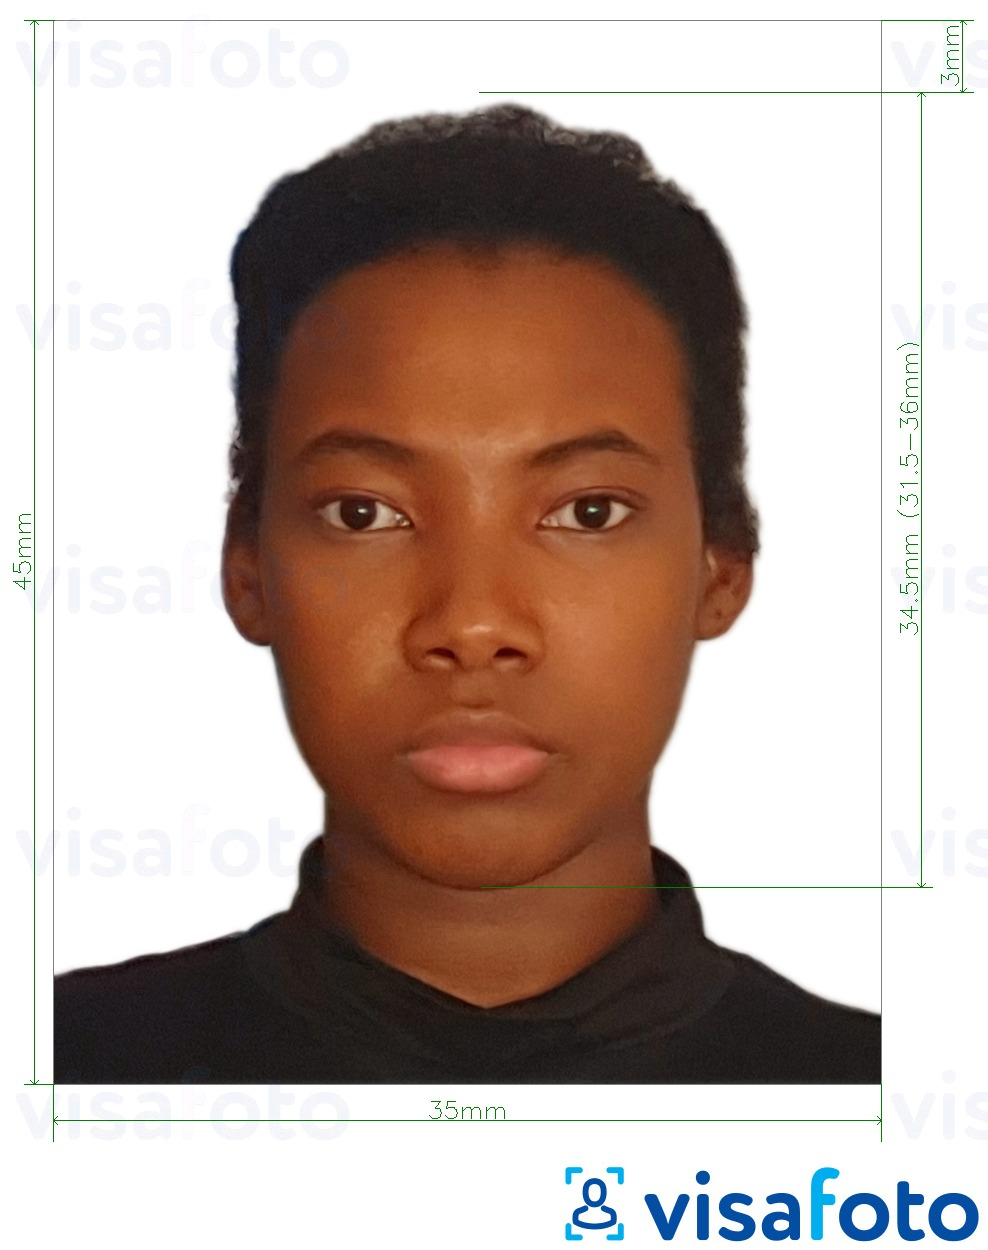 Example of photo for Ghana visa 3.5x4.5 cm (35x45 mm) with exact size specification